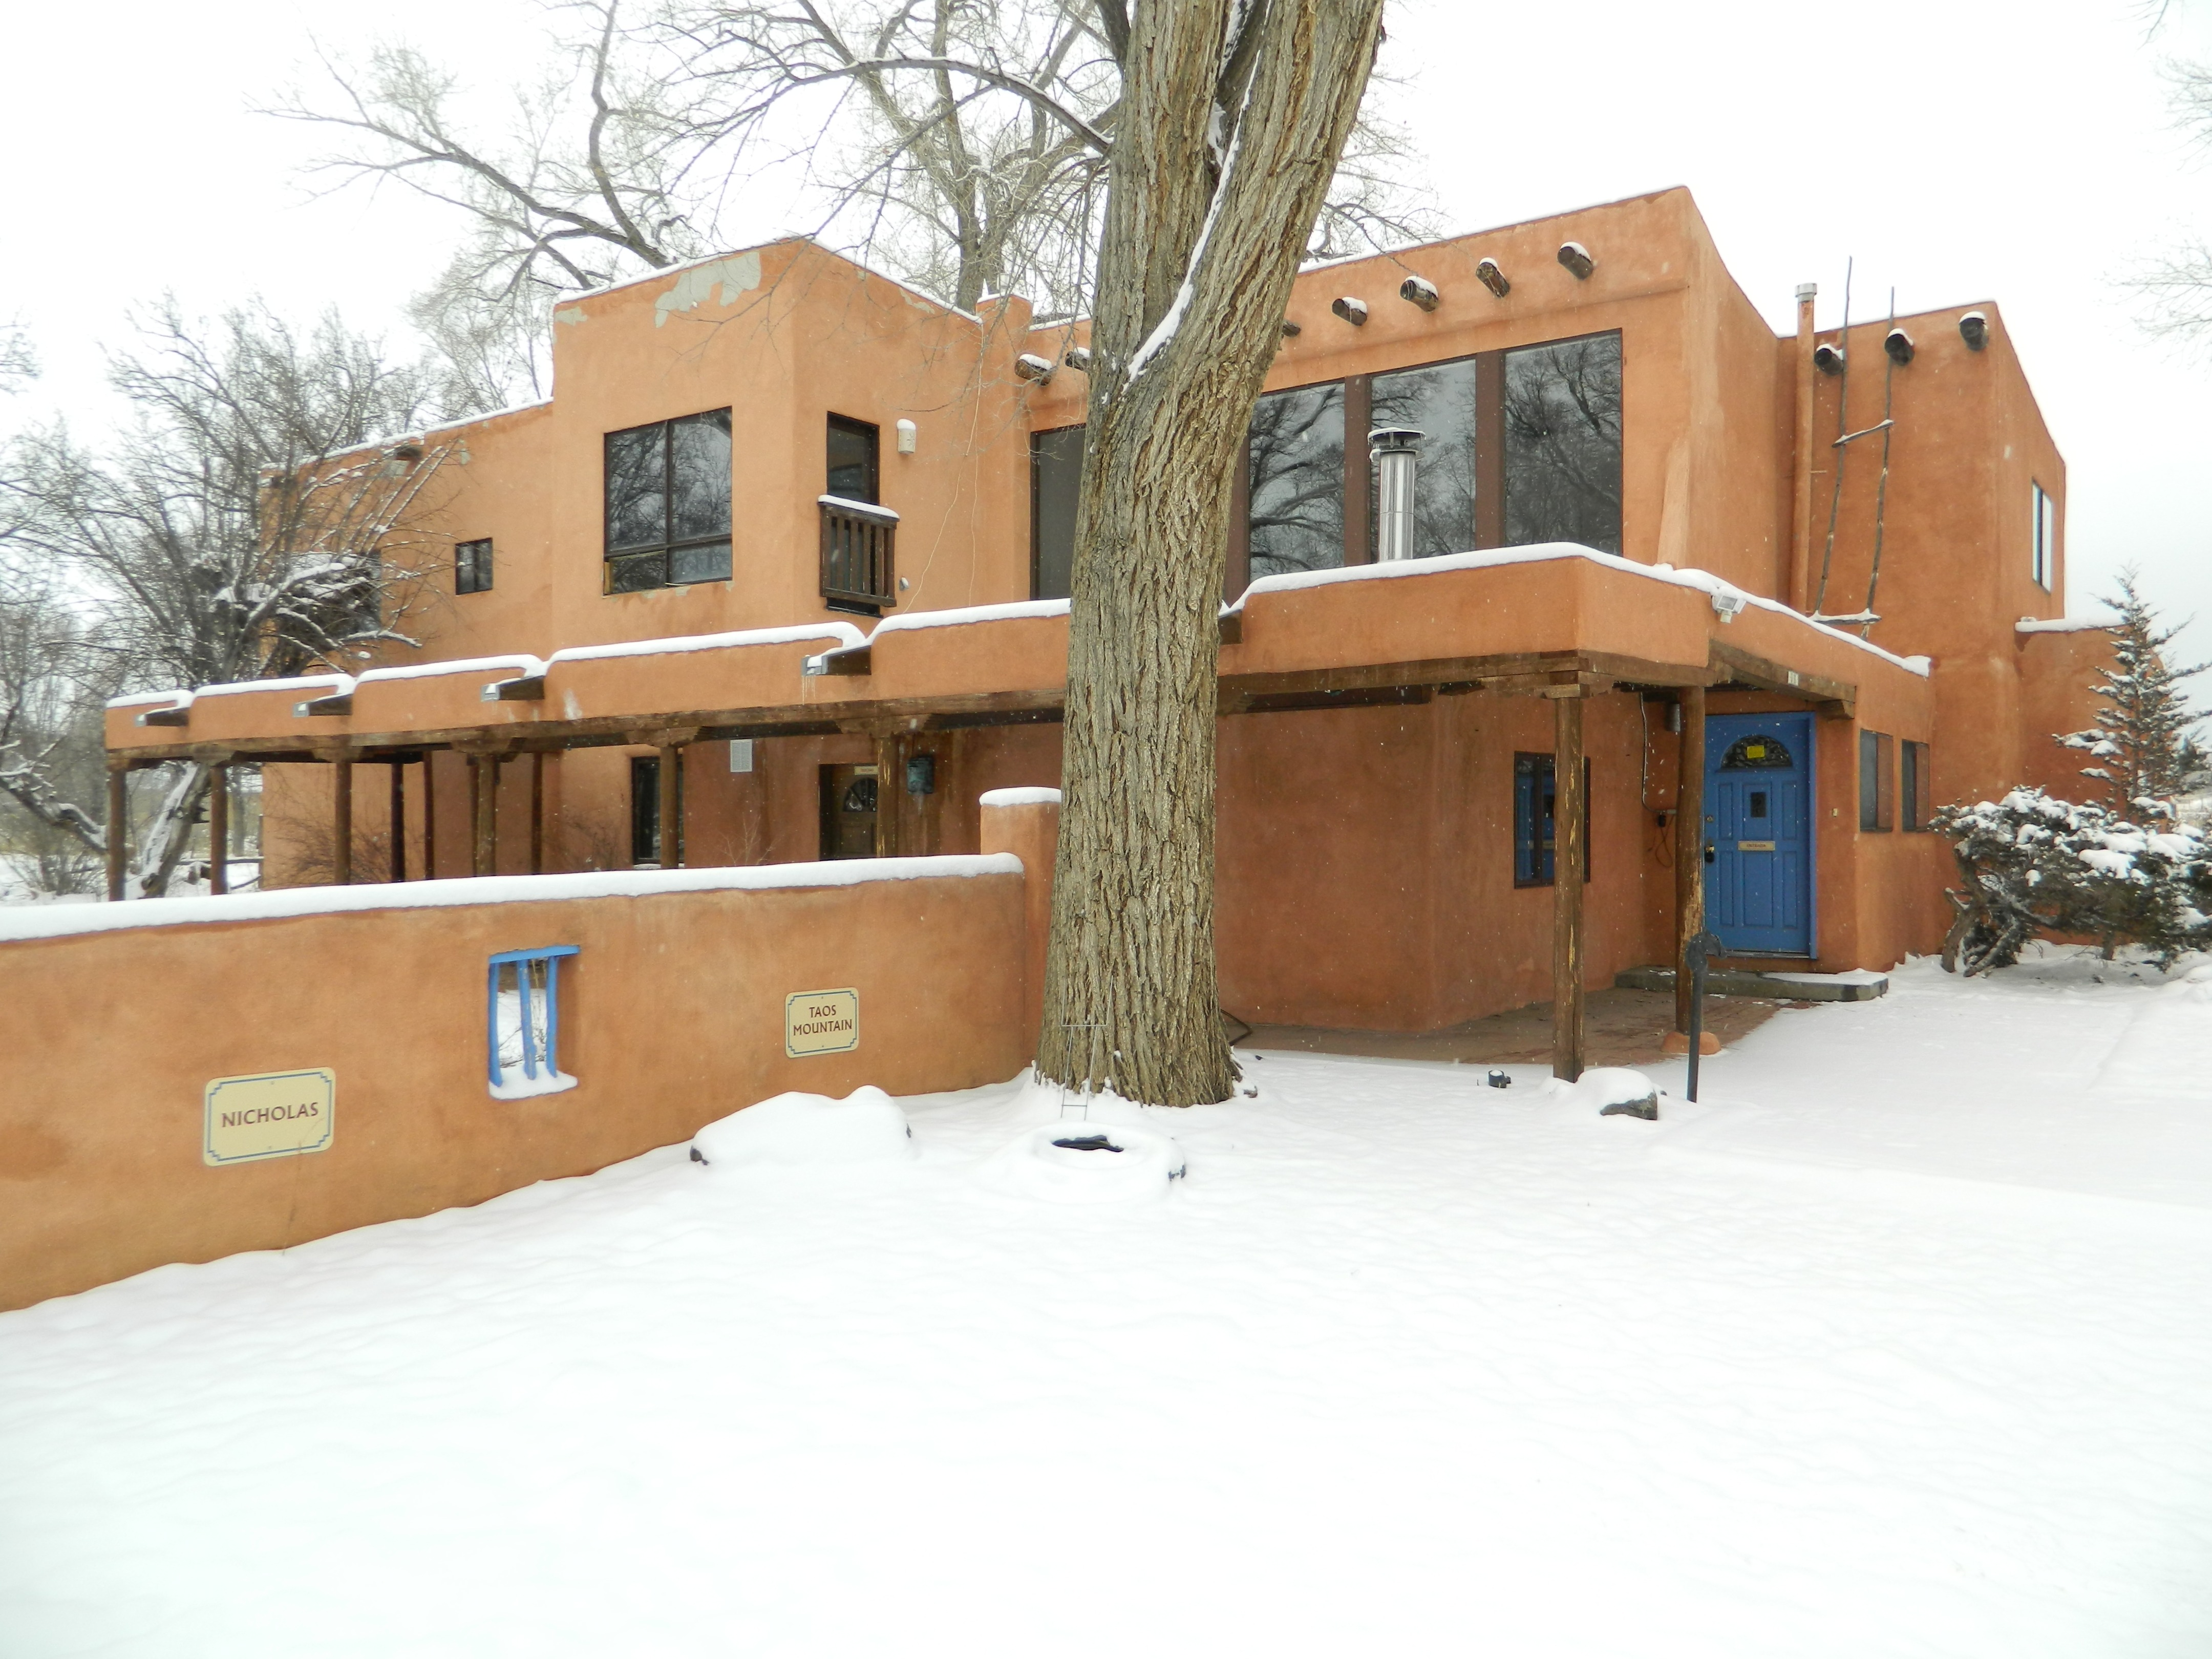 Not Forgotten Outreach Respite Center, a large, pueblo-style building with blue door, on a snowy day